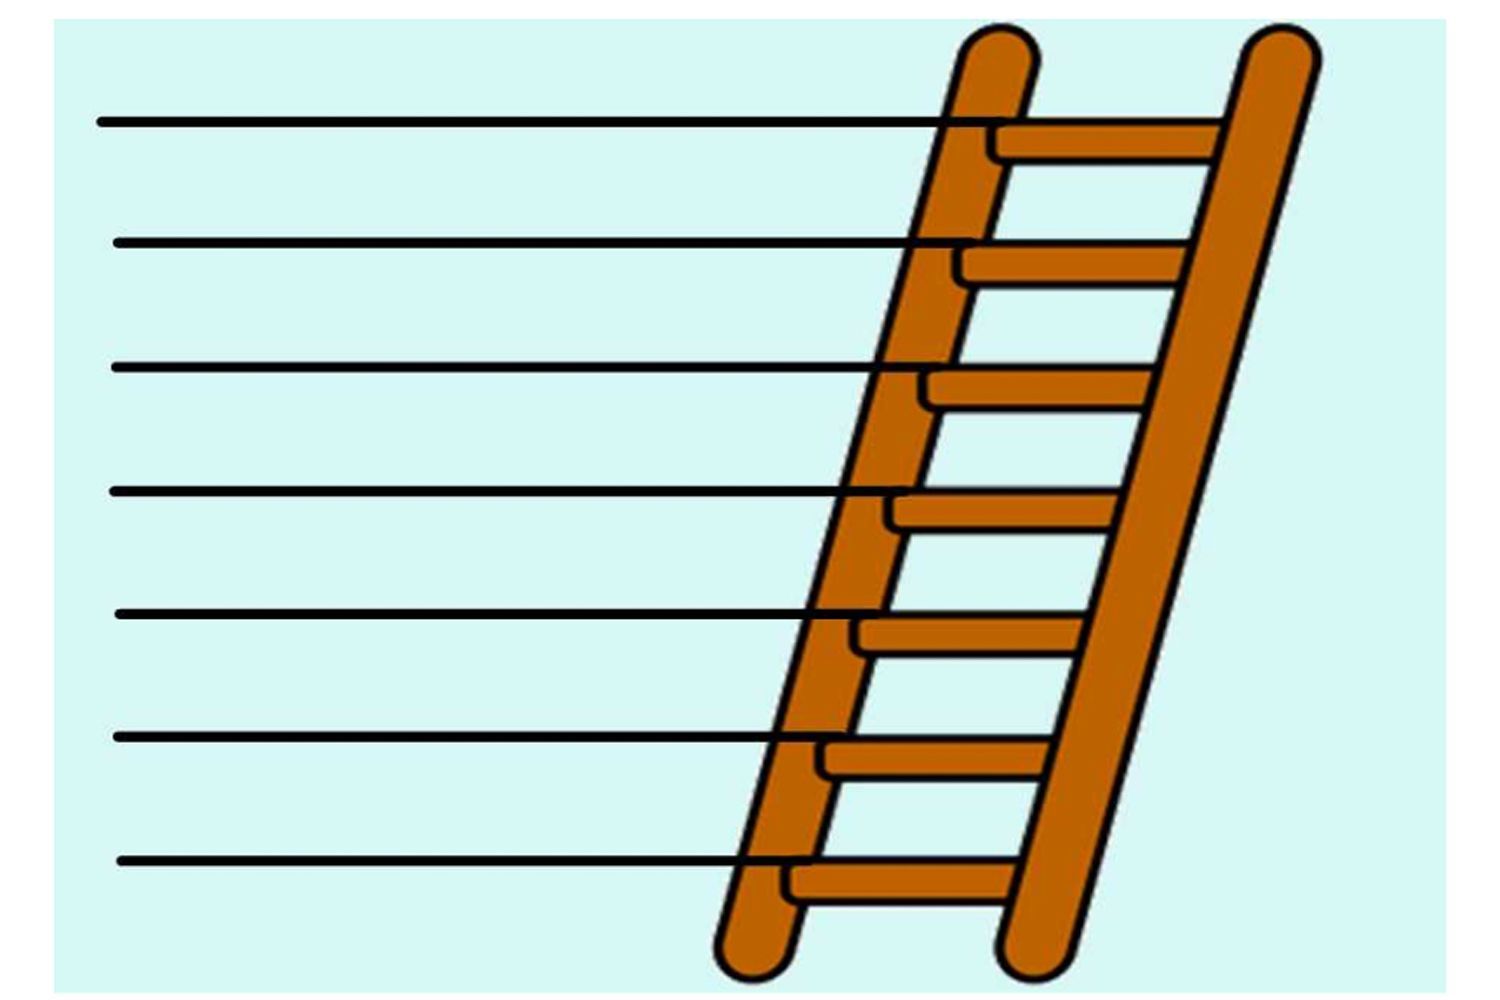 Ranking Ladder thinking tool template for IWB